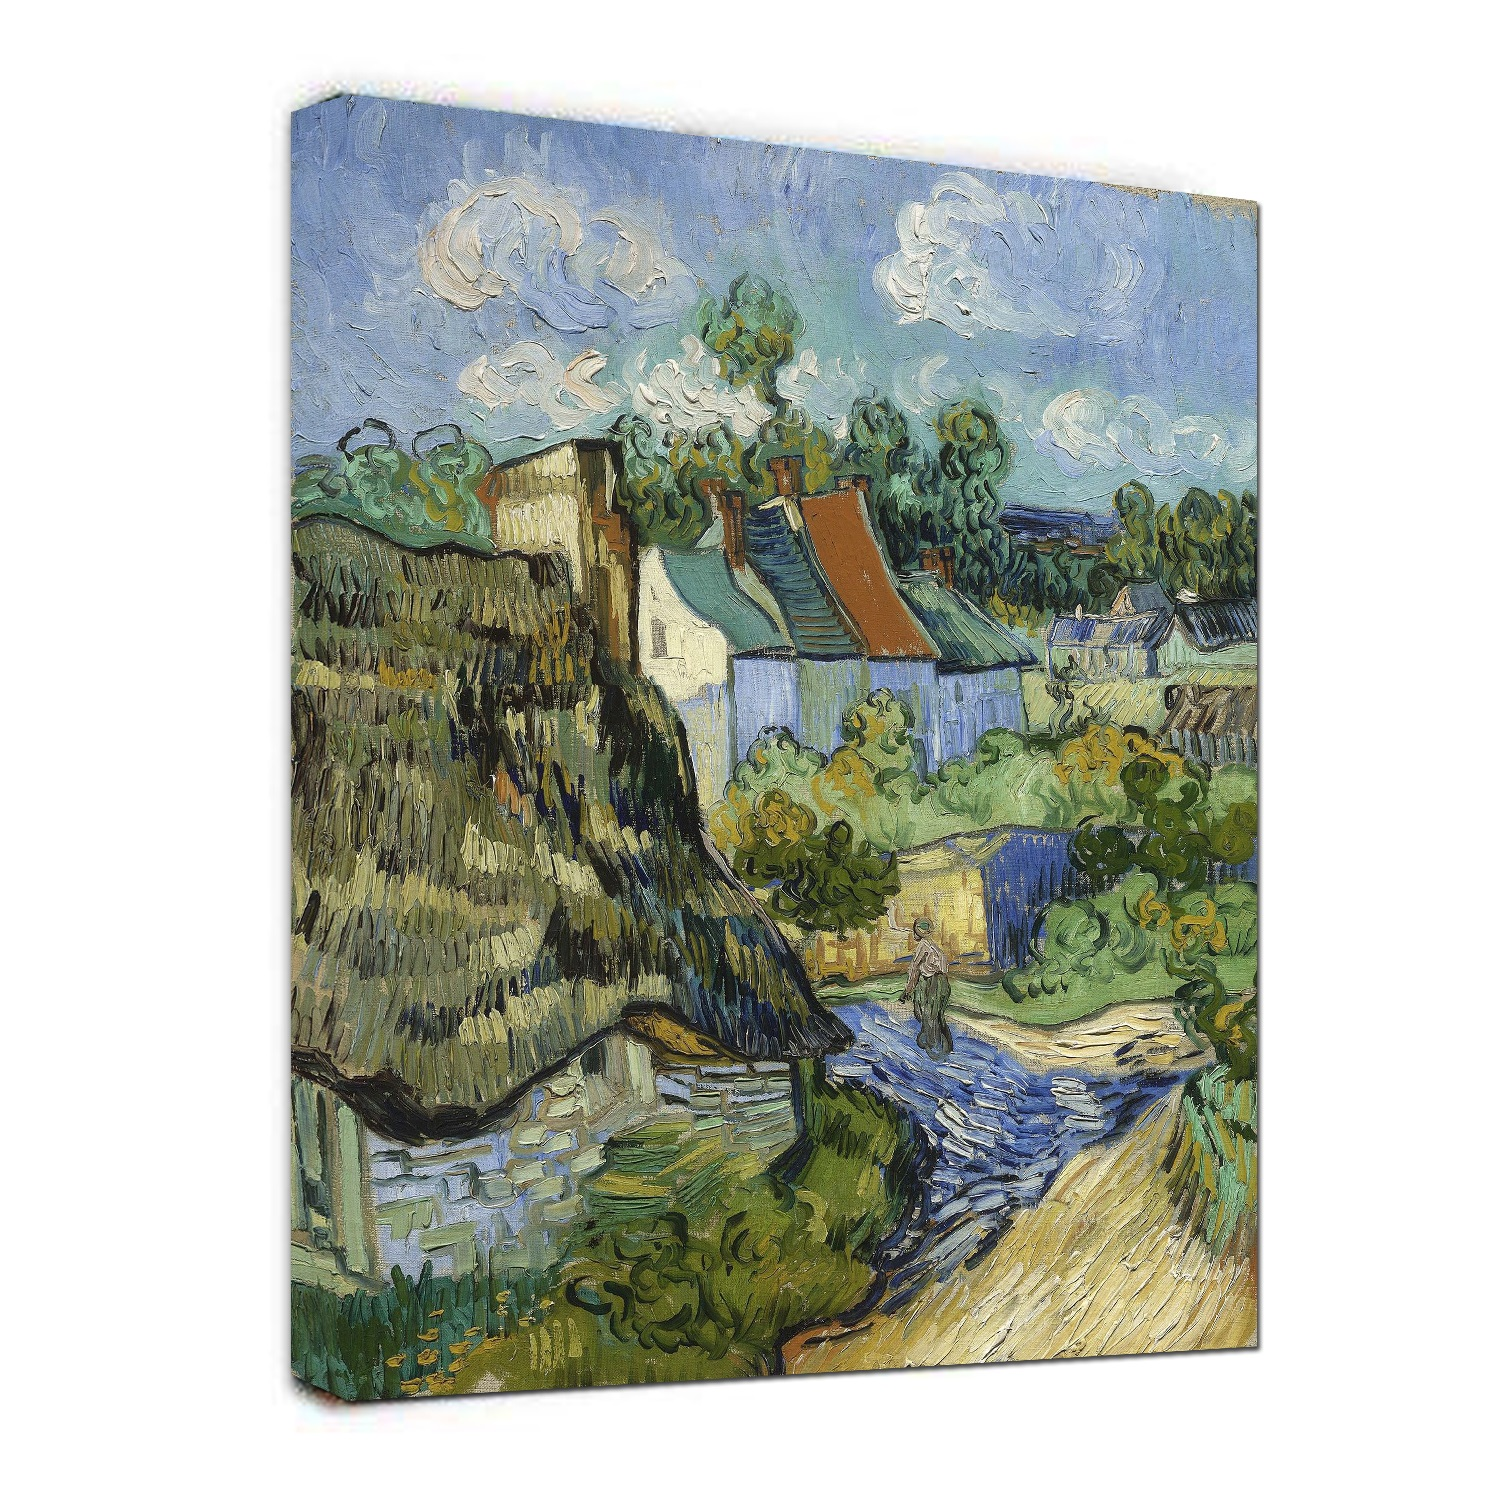 Hand Painted Houses in Auvers by Vincent Van Gogh oil painting-Landscape Canvas Wall Art